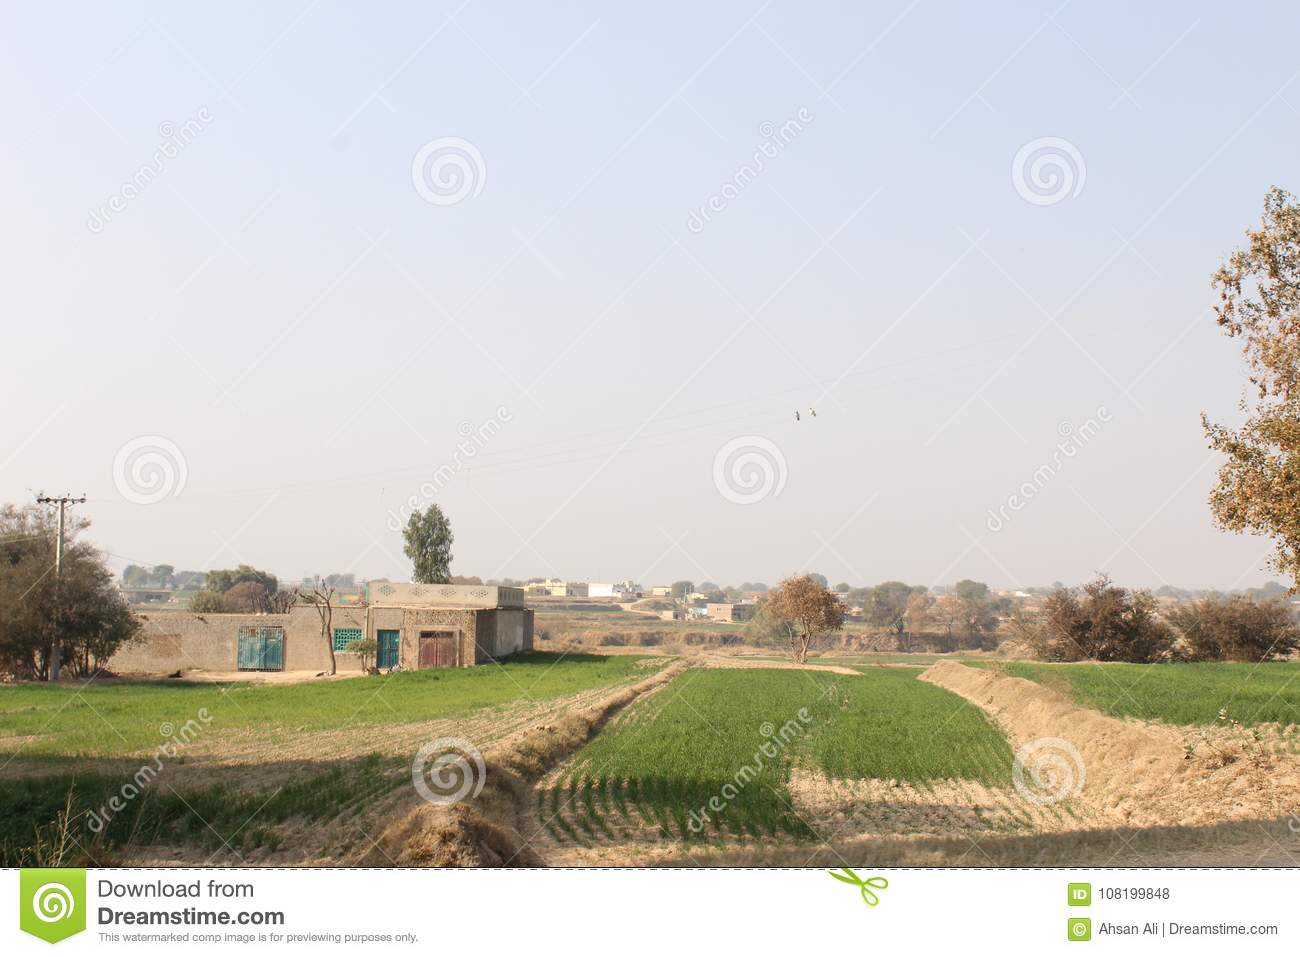 A view of village life and fields